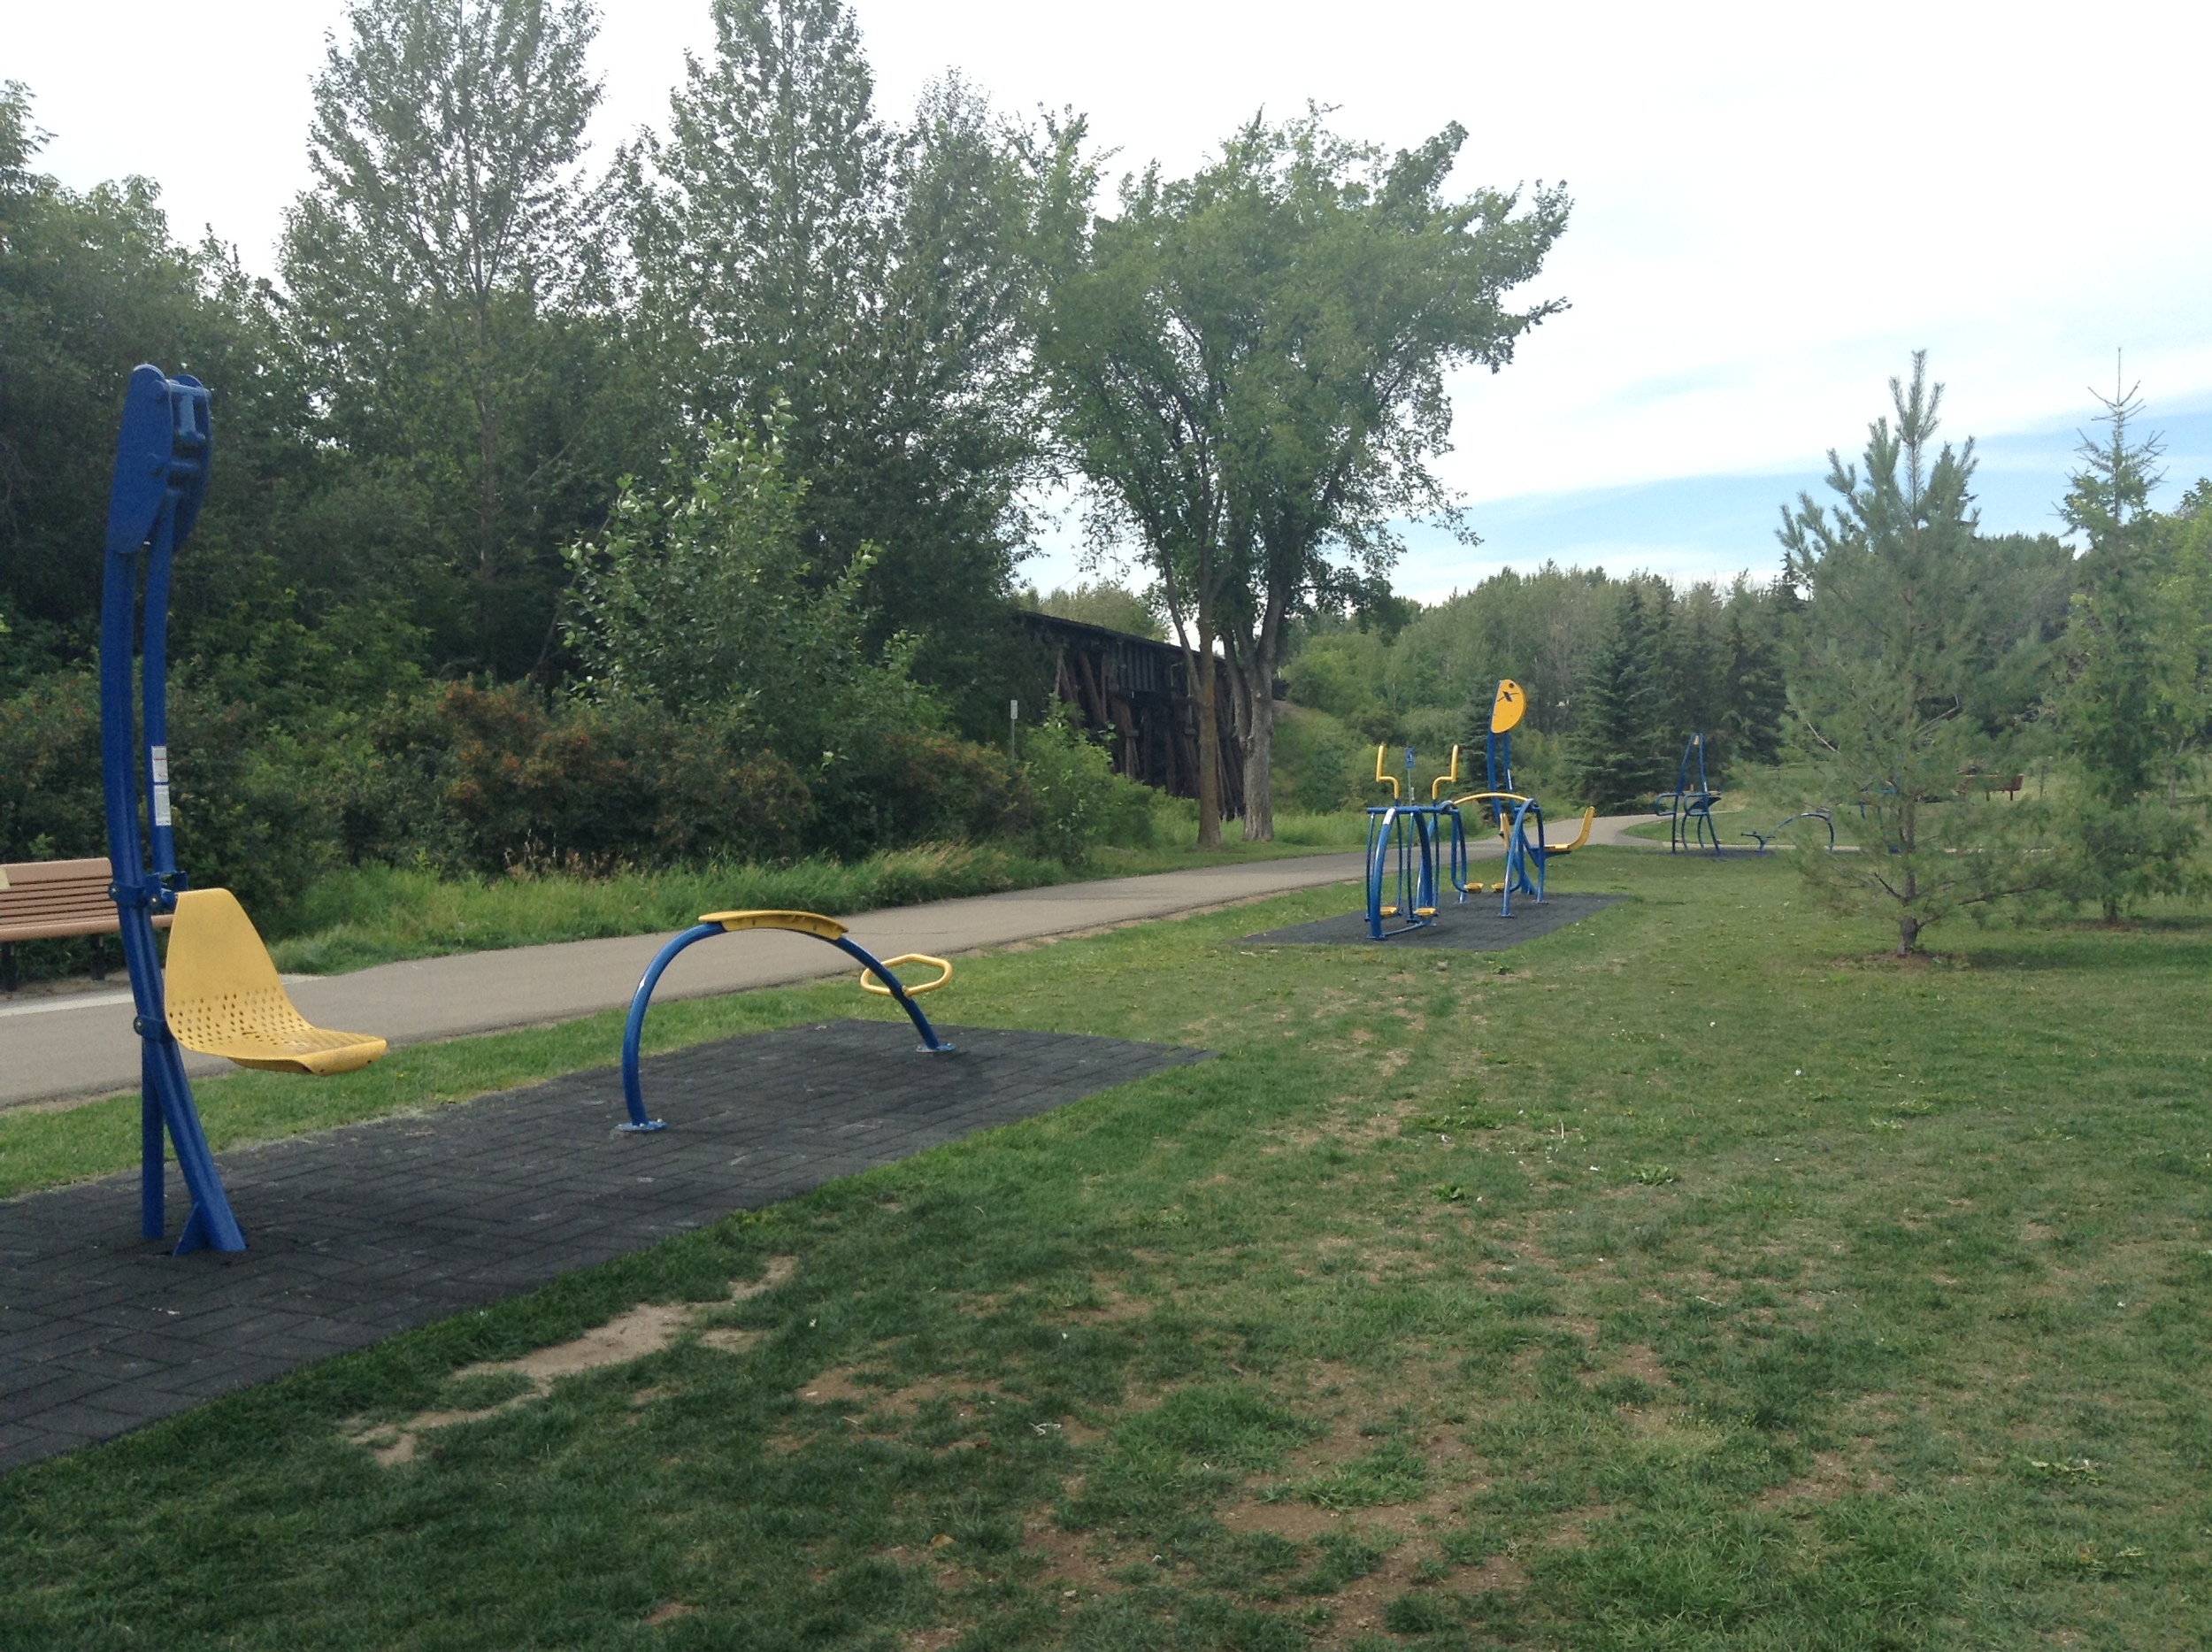 Lions Park offers exercise equipment for public use!